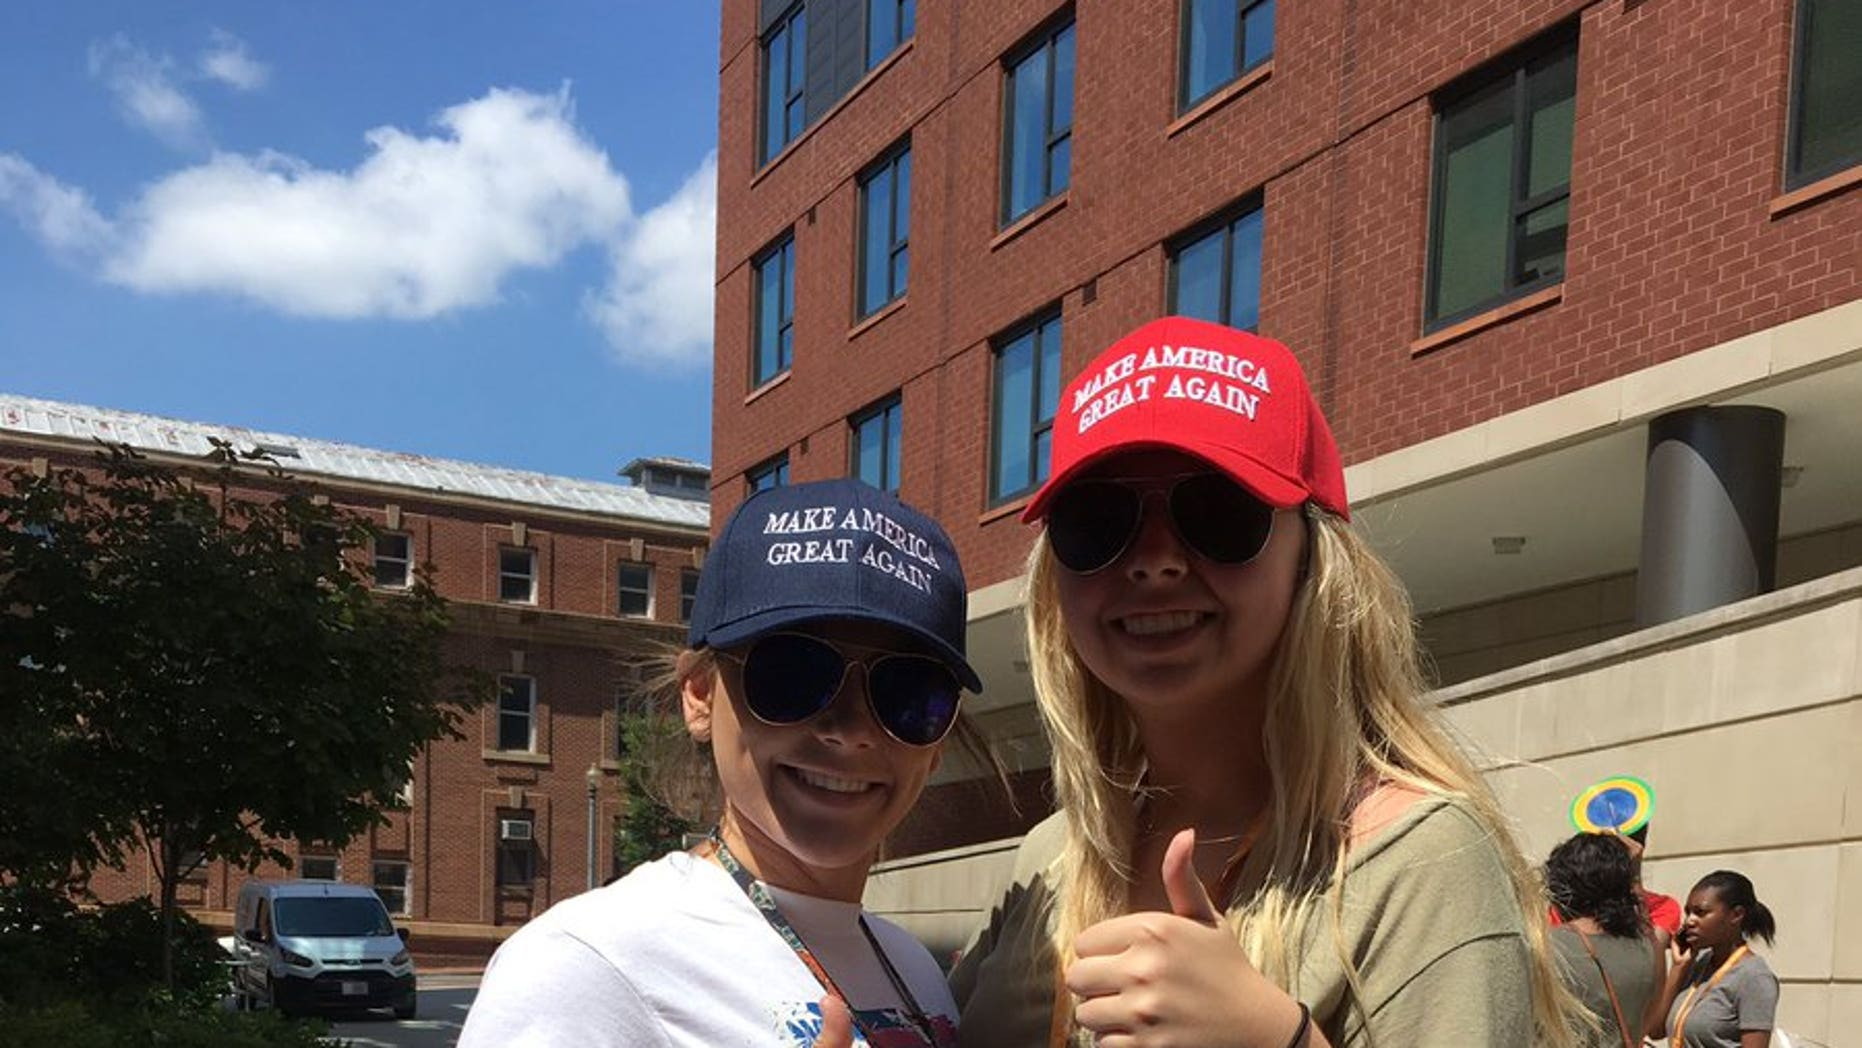 Pennsylvania high school student Allie Vandee, left, says she was harassed for wearing MAGA gear during a recent visit to Howard University.